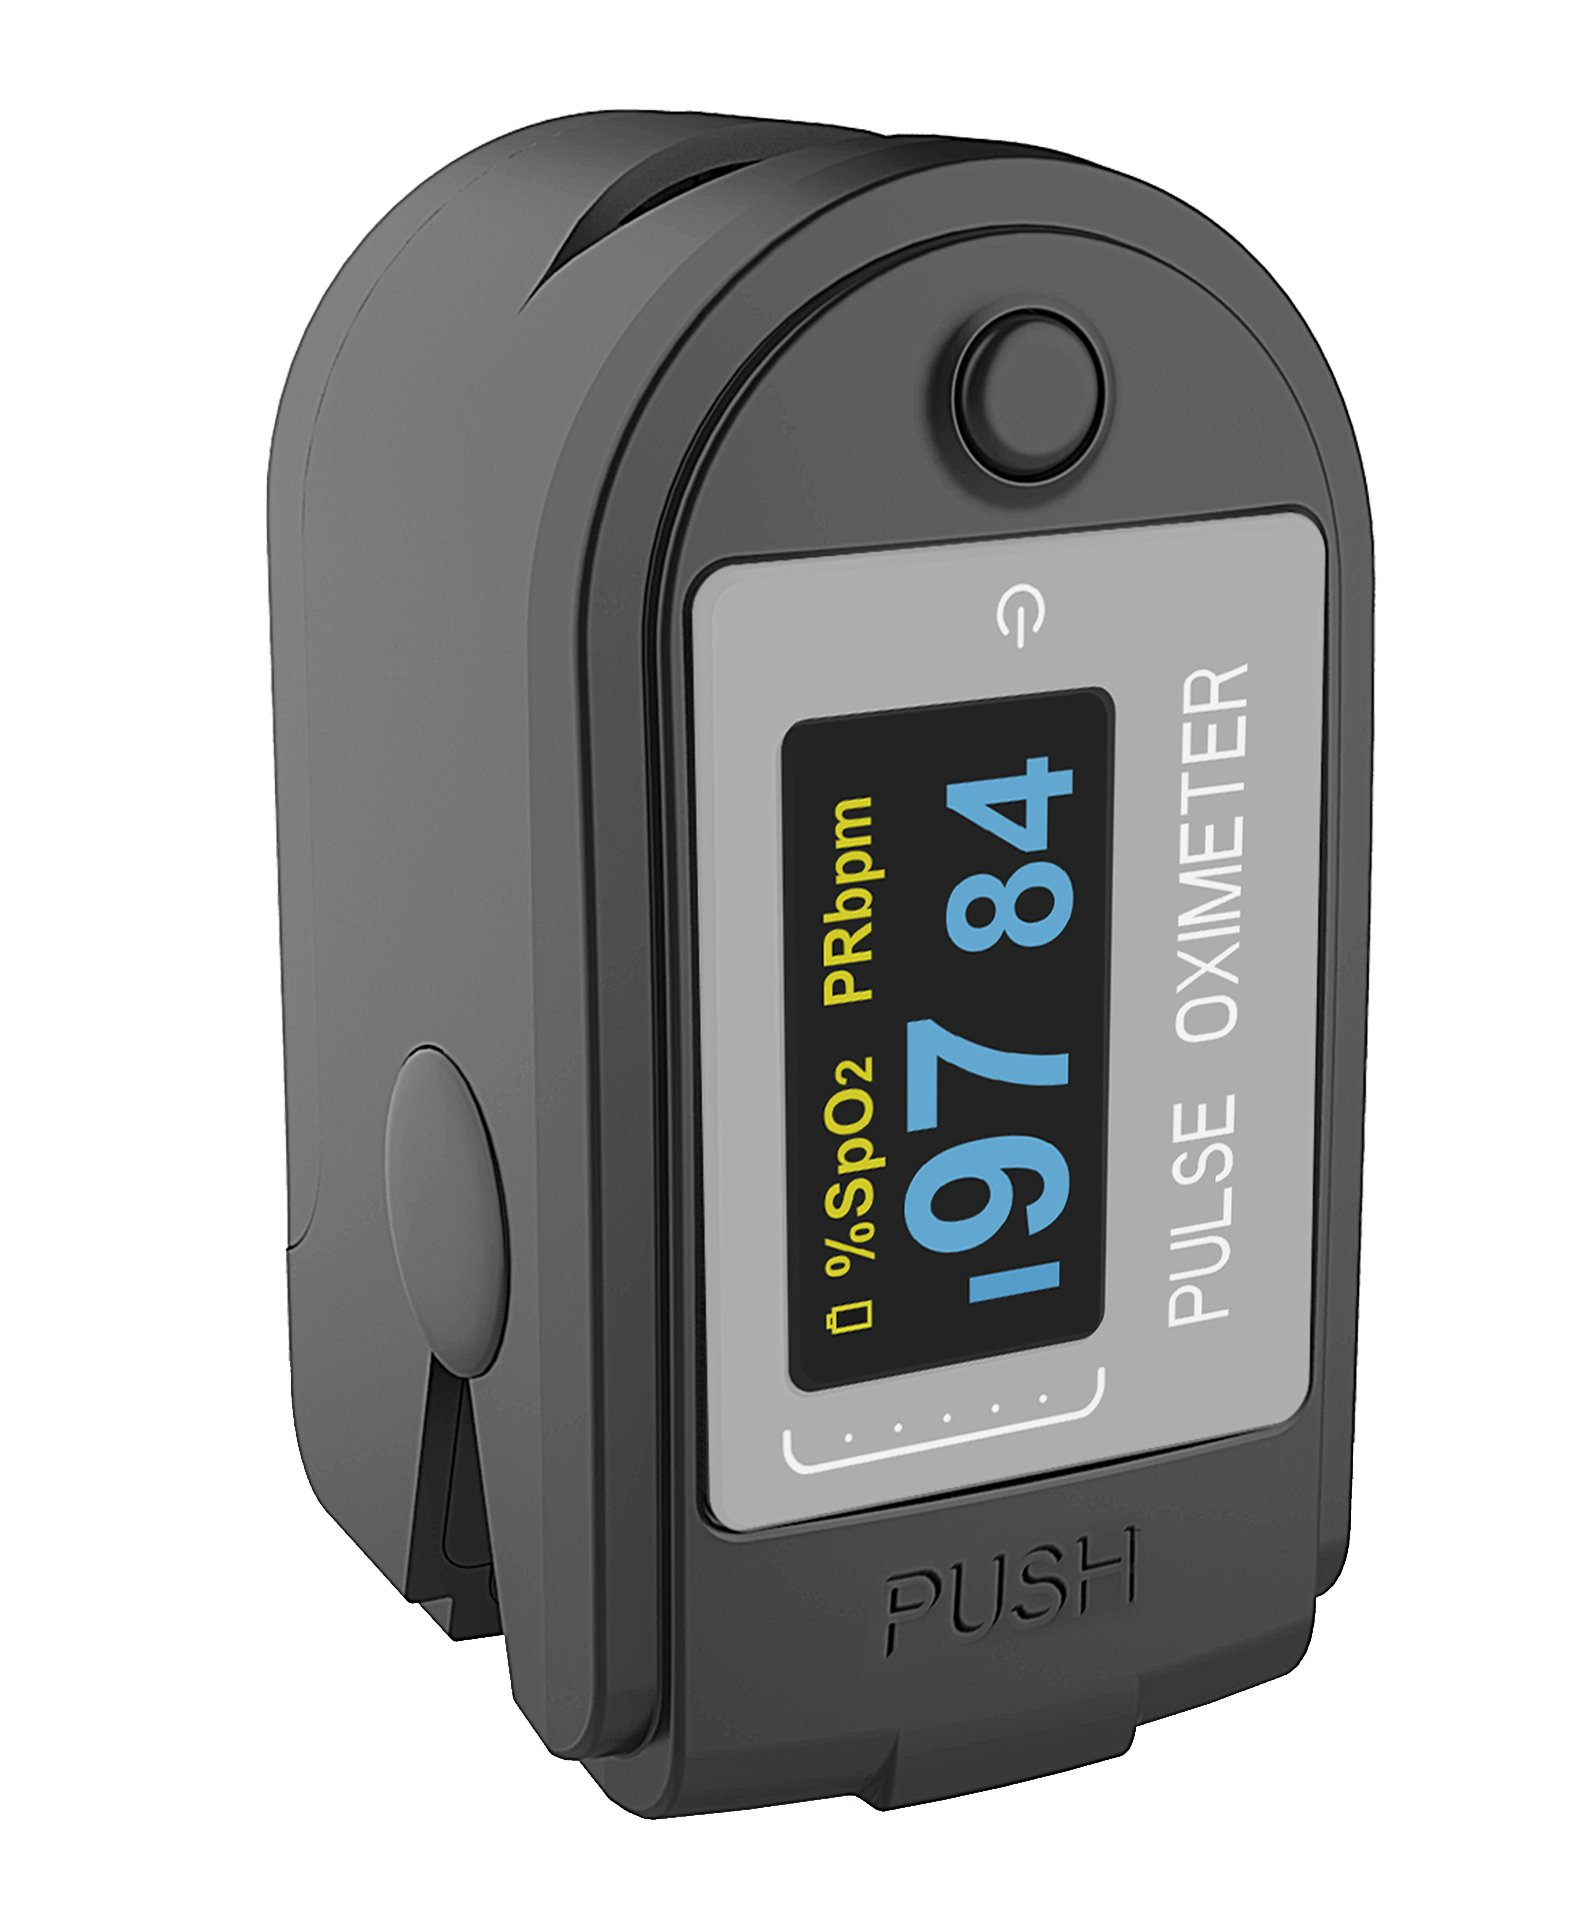 Concord Health Supply EAD Pro Bluetooth (iOS/Android) Fingertip Pulse Oximeter Monitor, Memory Stores SpO2 Data, Steps and Calories, with Silicon Cover, Carrying Case, Batteries and Lanyard